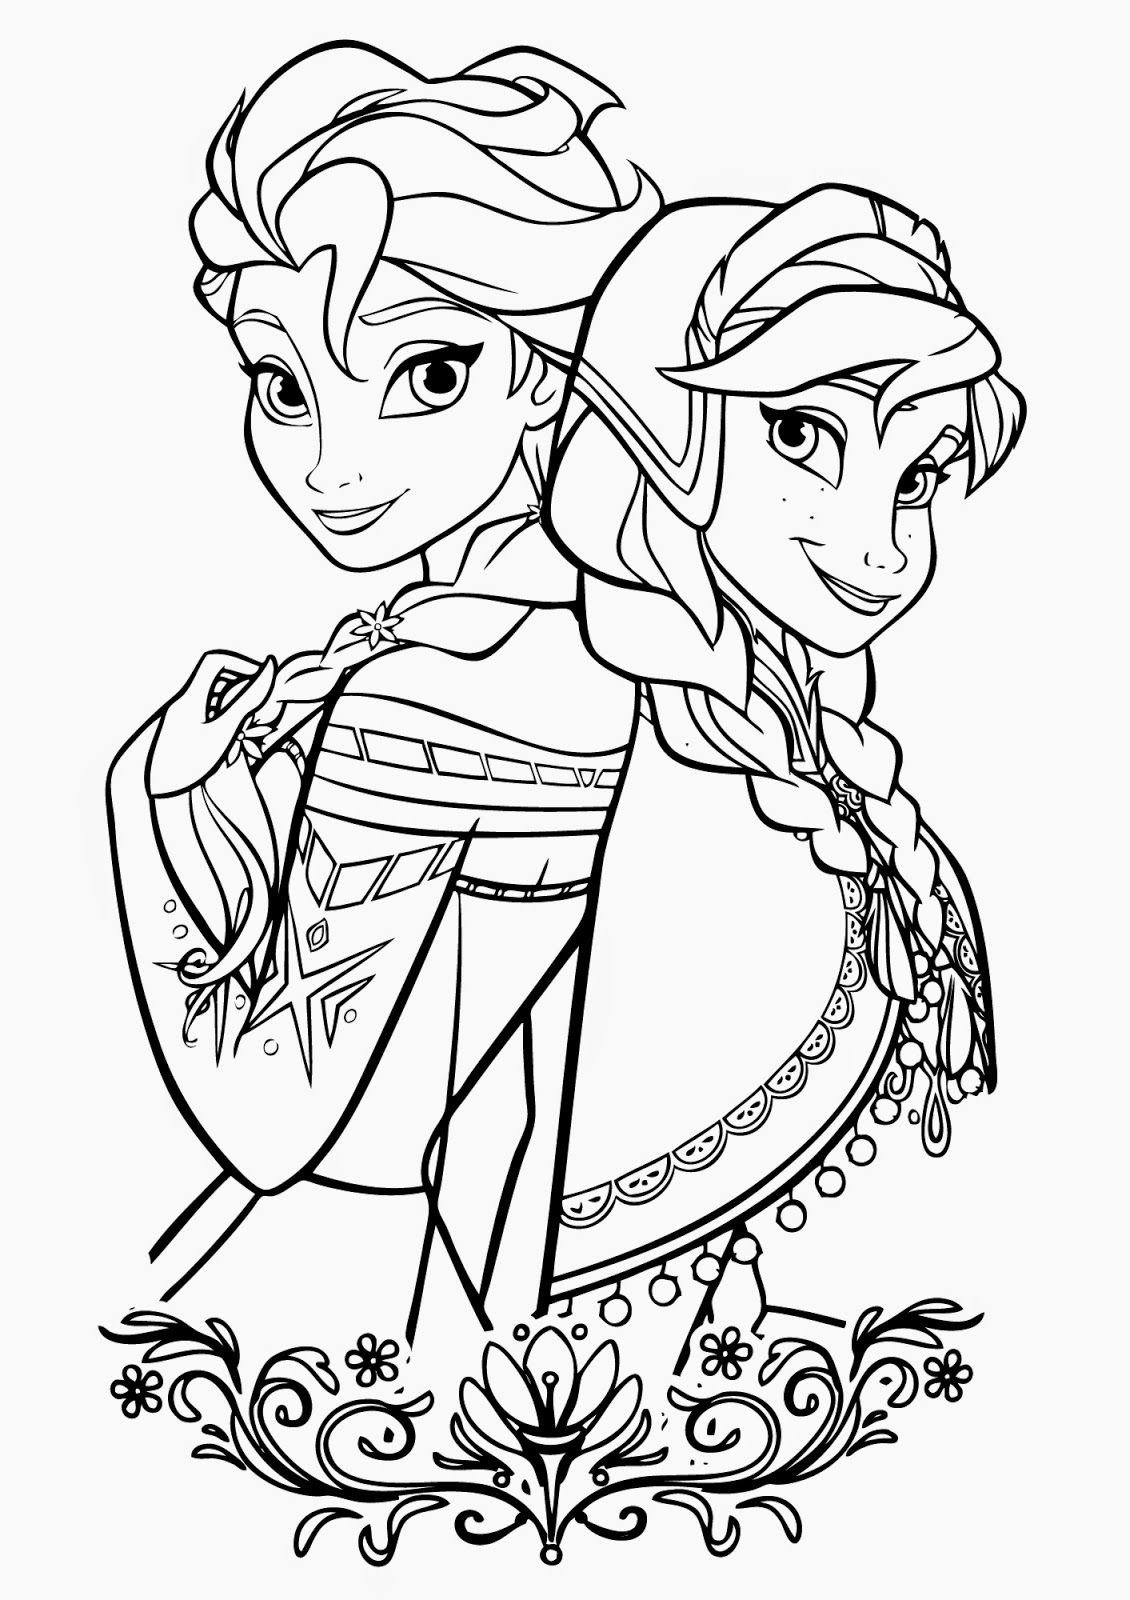 Disney coloring pages of frozen - Find 15 Beautiful Frozen Disney Coloring Pages Free With All Of The Character Frozen Is